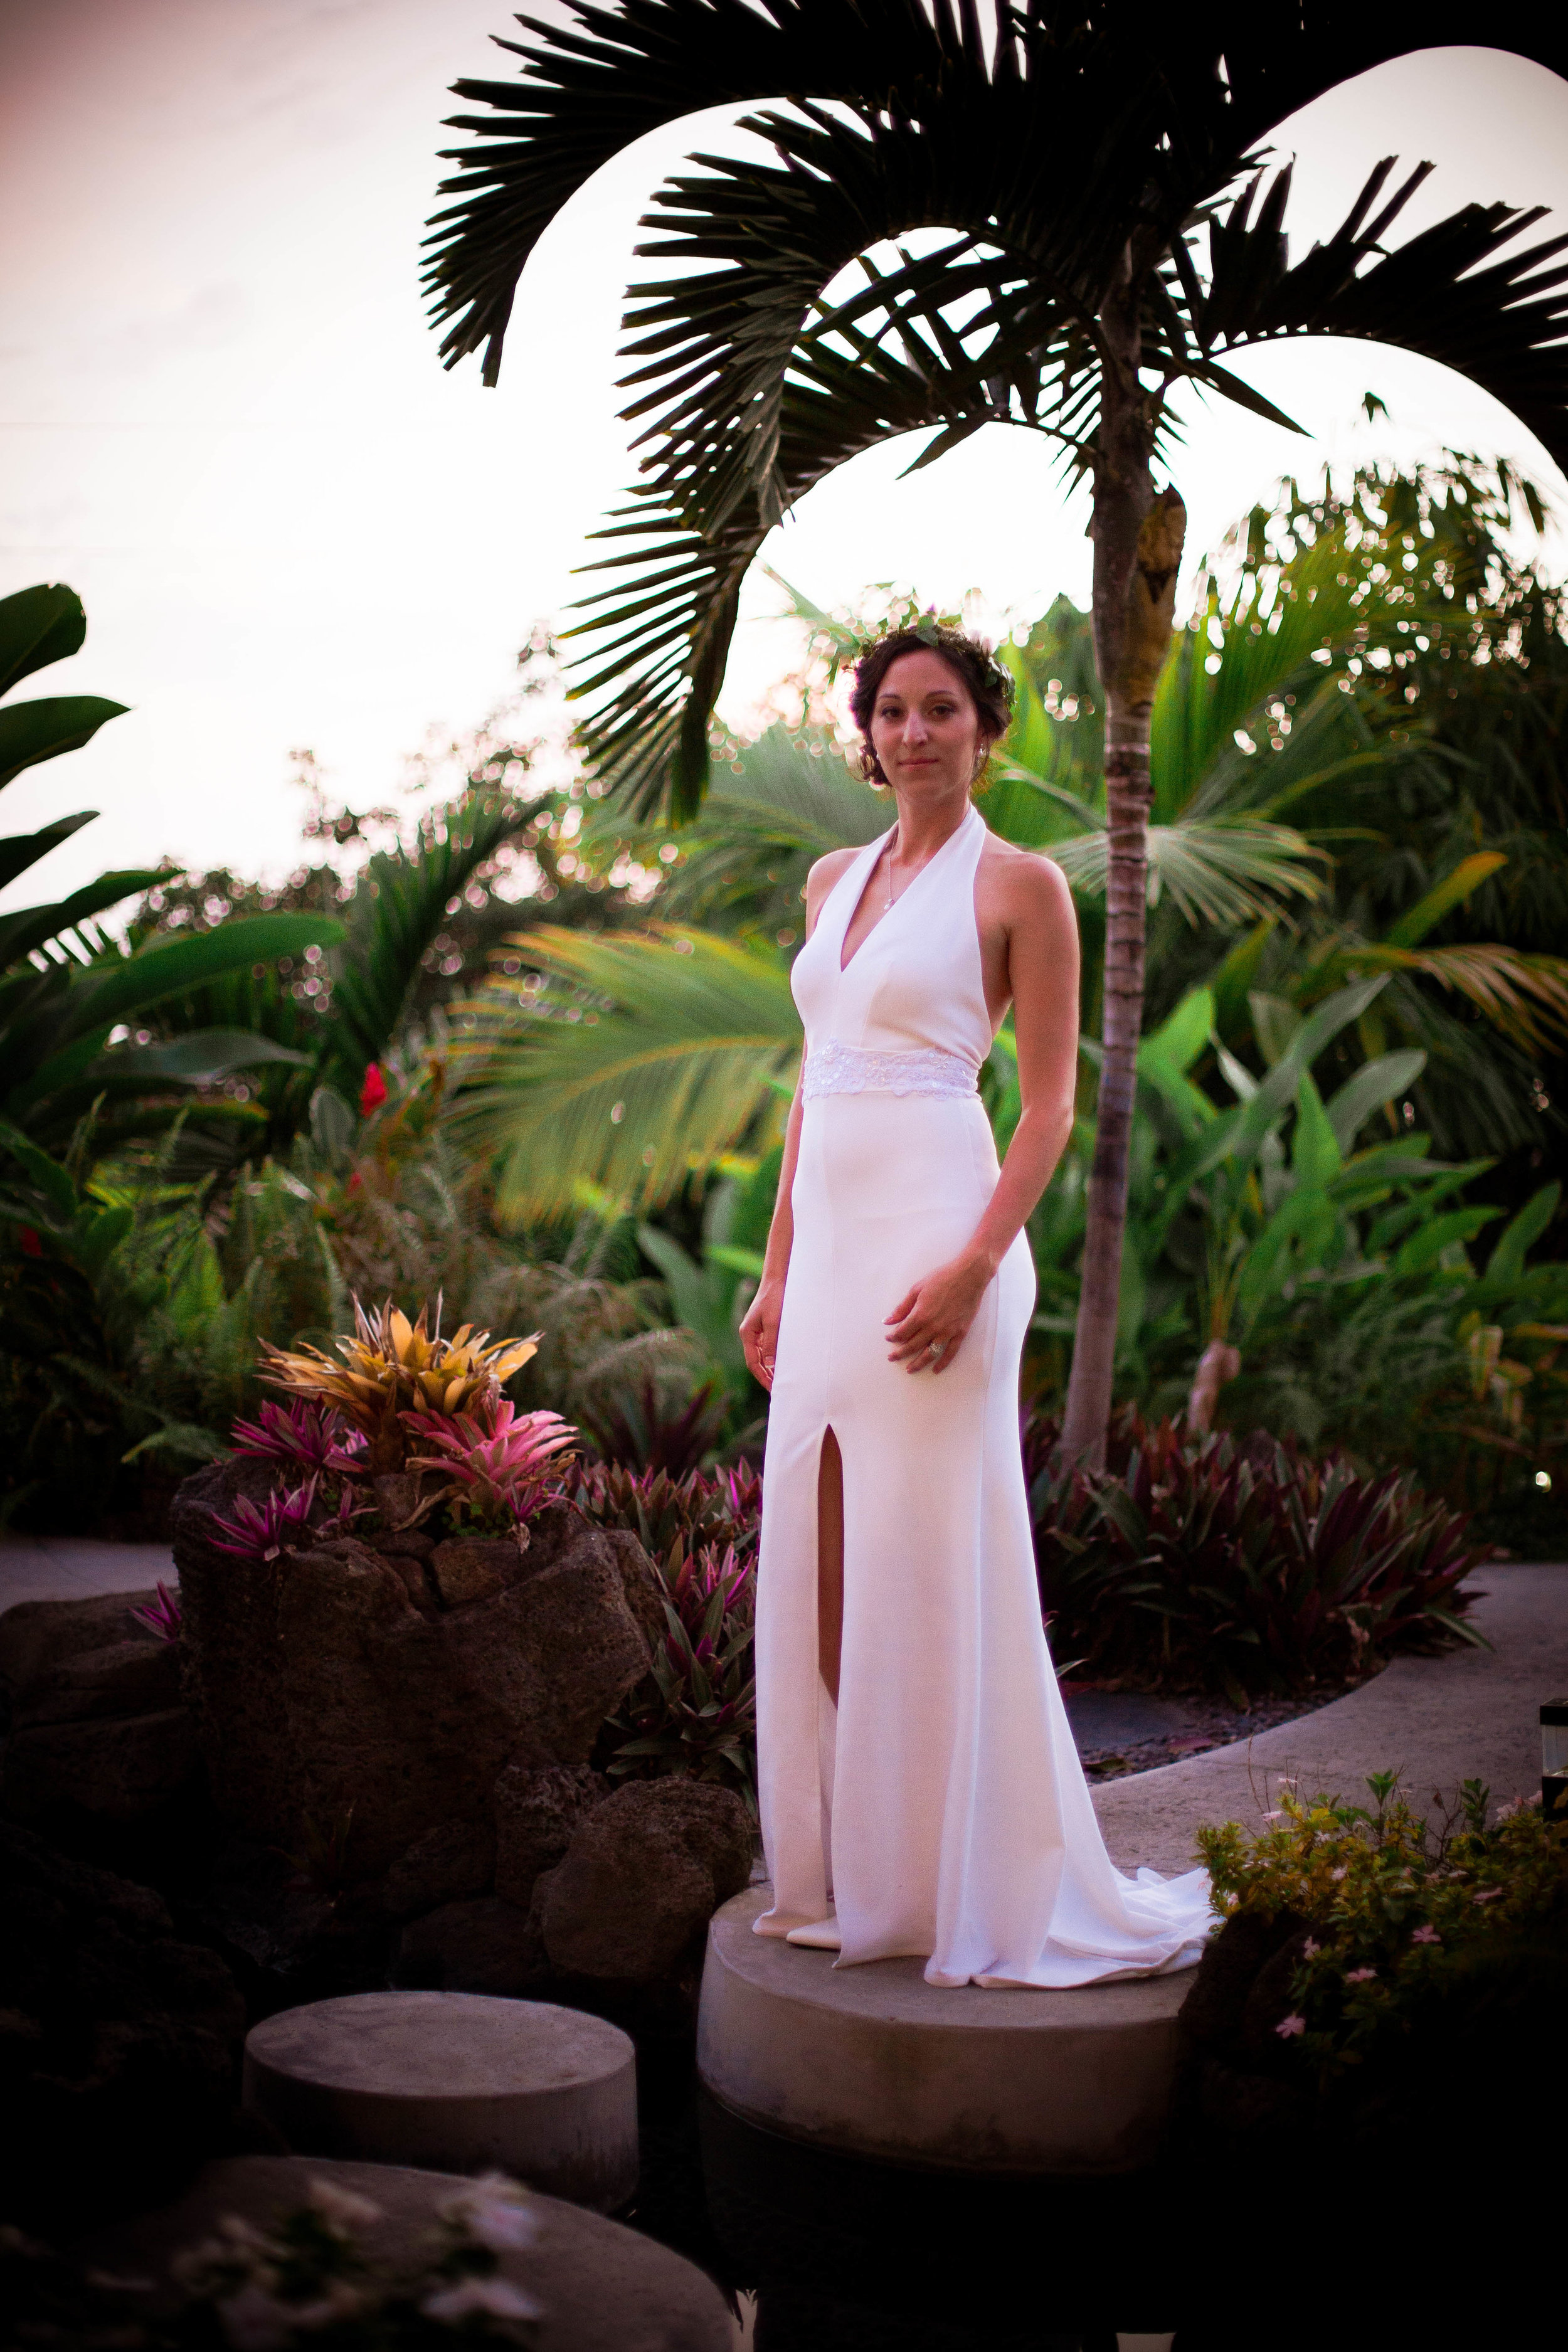 big island hawaii holualoa estate wedding 20160908184818-1kb.jpg